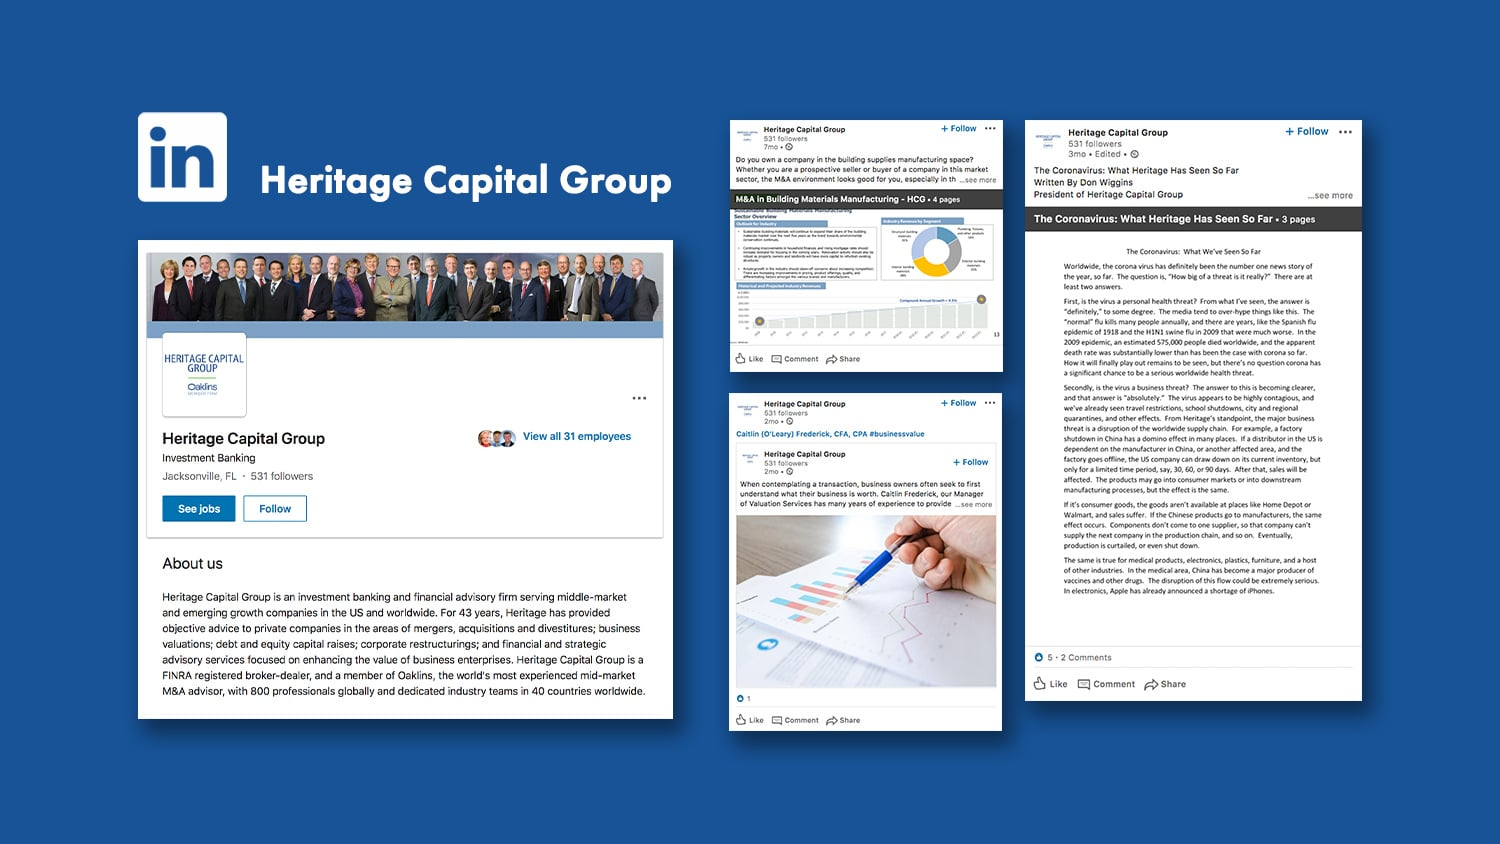 Graphic mockup of Heritage Capital Group LinkedIn Social Media Management and Marketing by digital marketing group Beson4 in Jacksonville, Florida